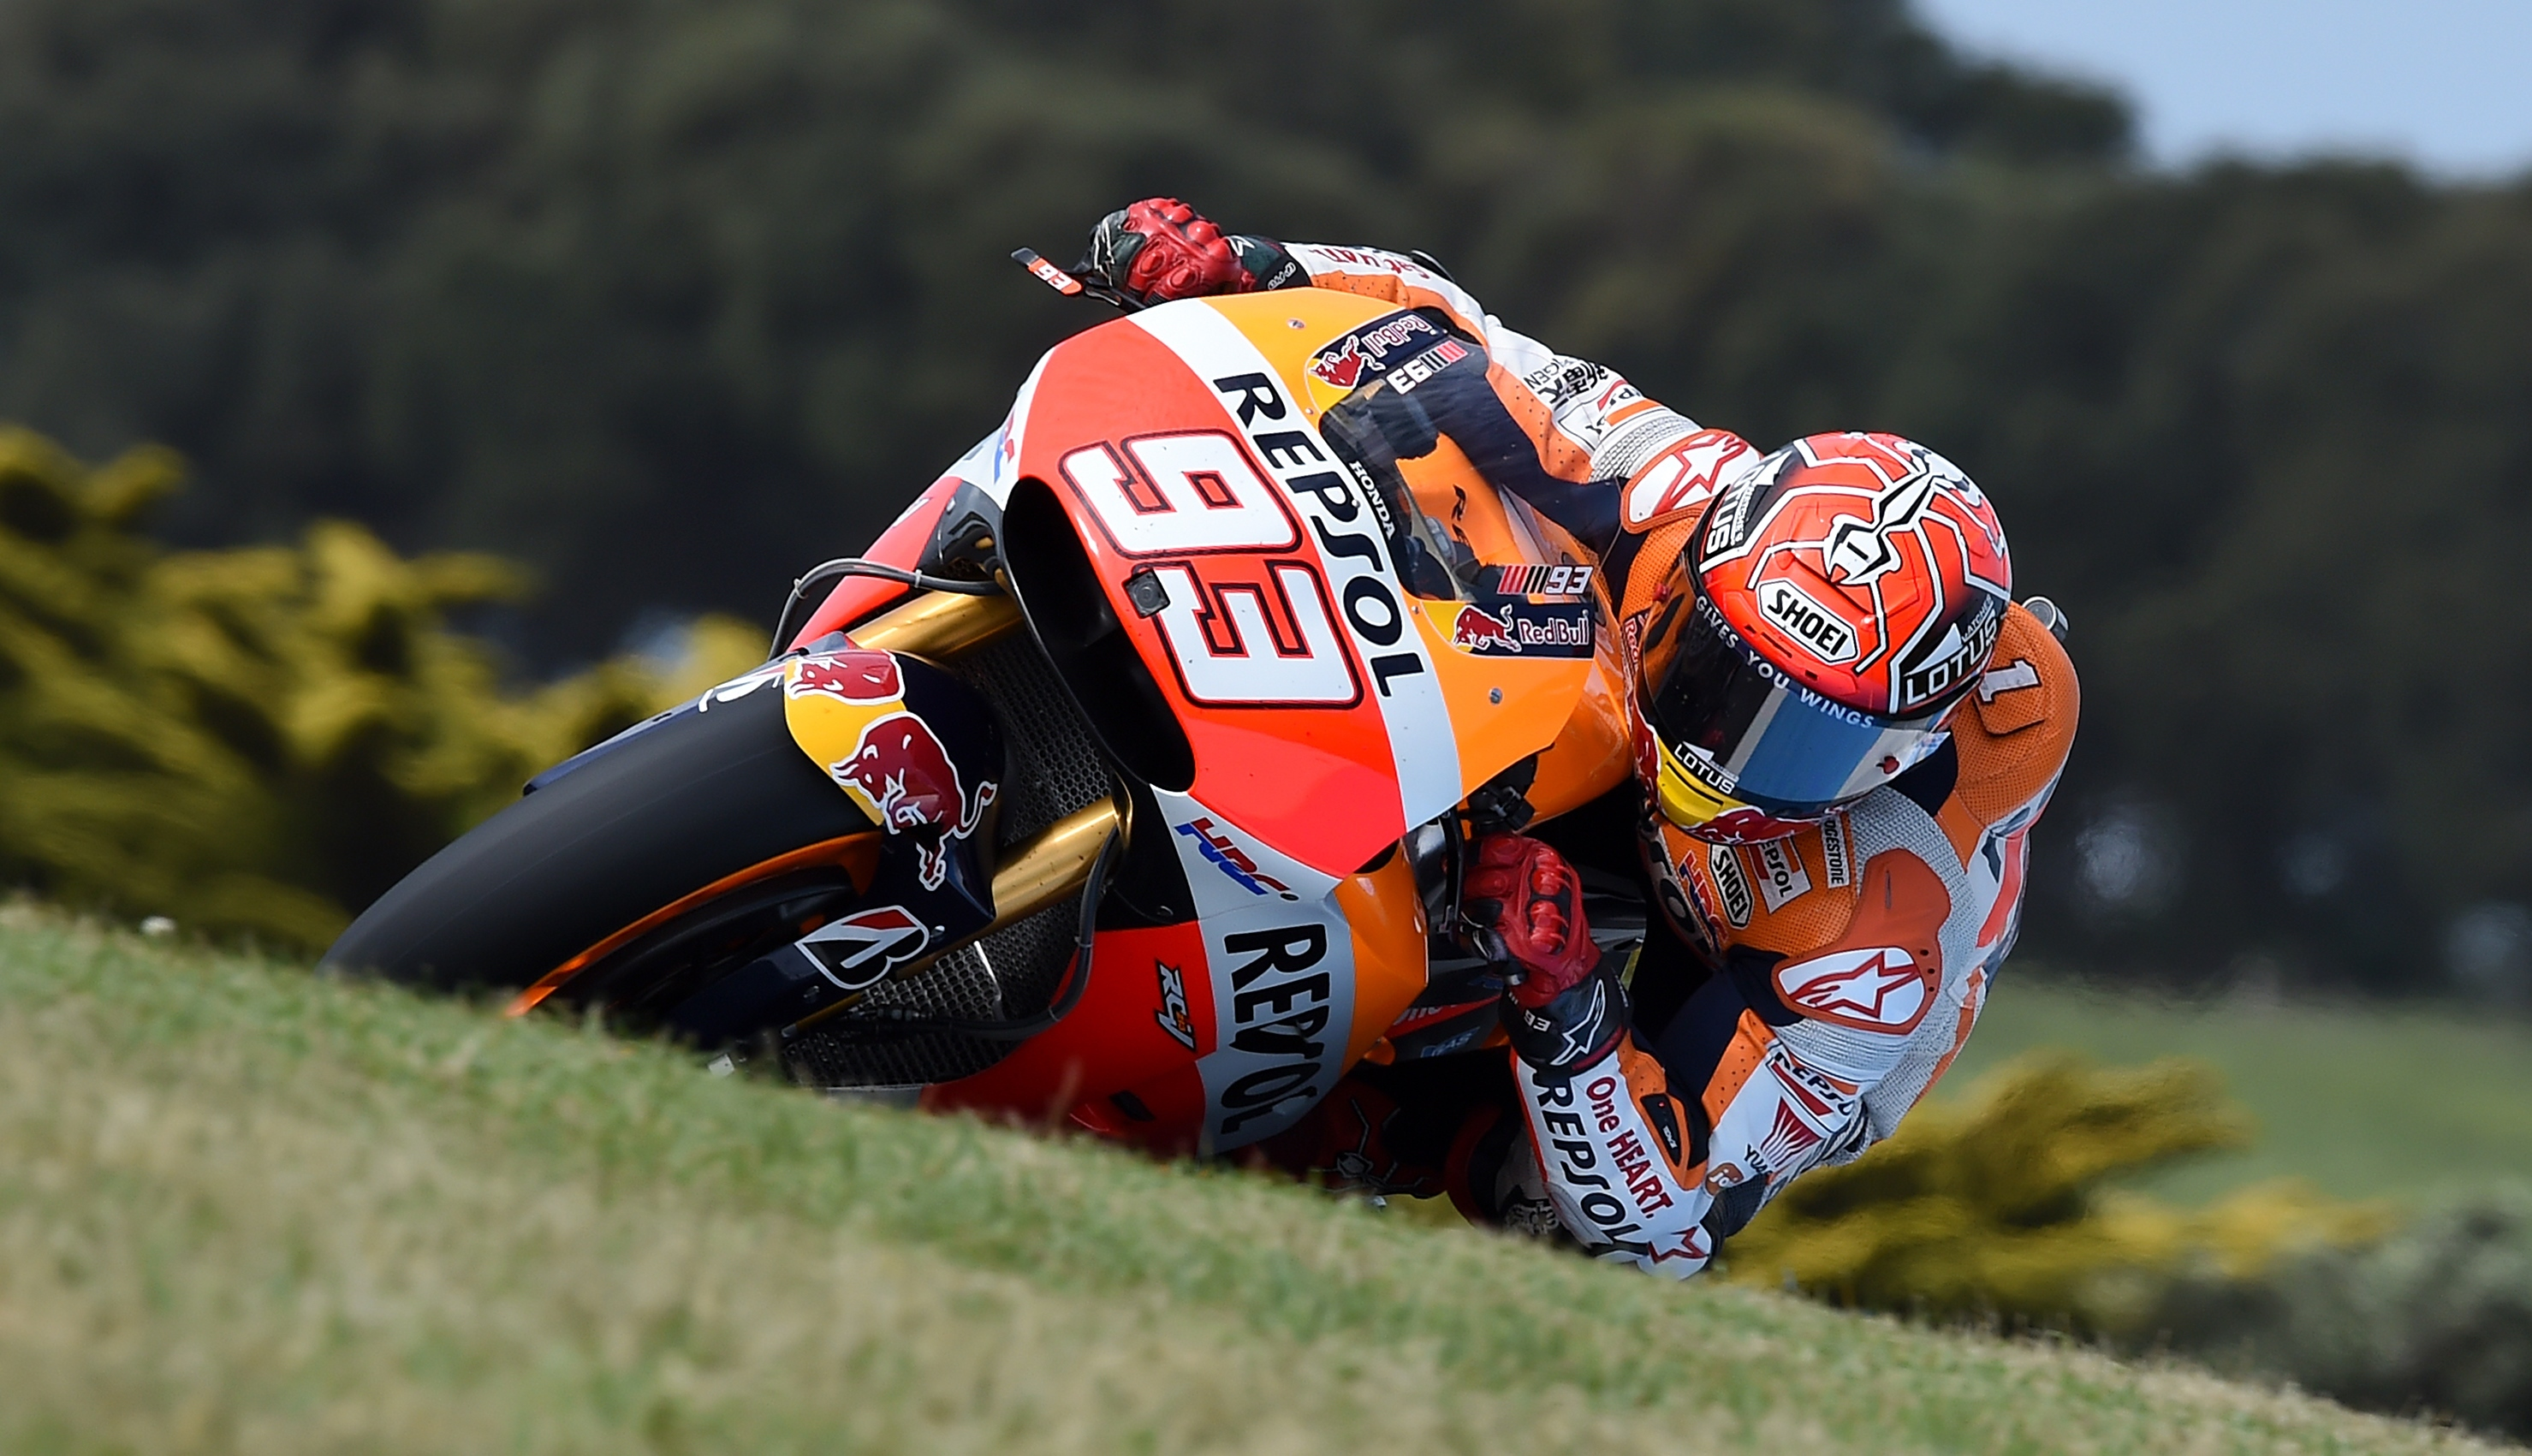 motogp gp d australie marquez s impose lorenzo se rapproche. Black Bedroom Furniture Sets. Home Design Ideas